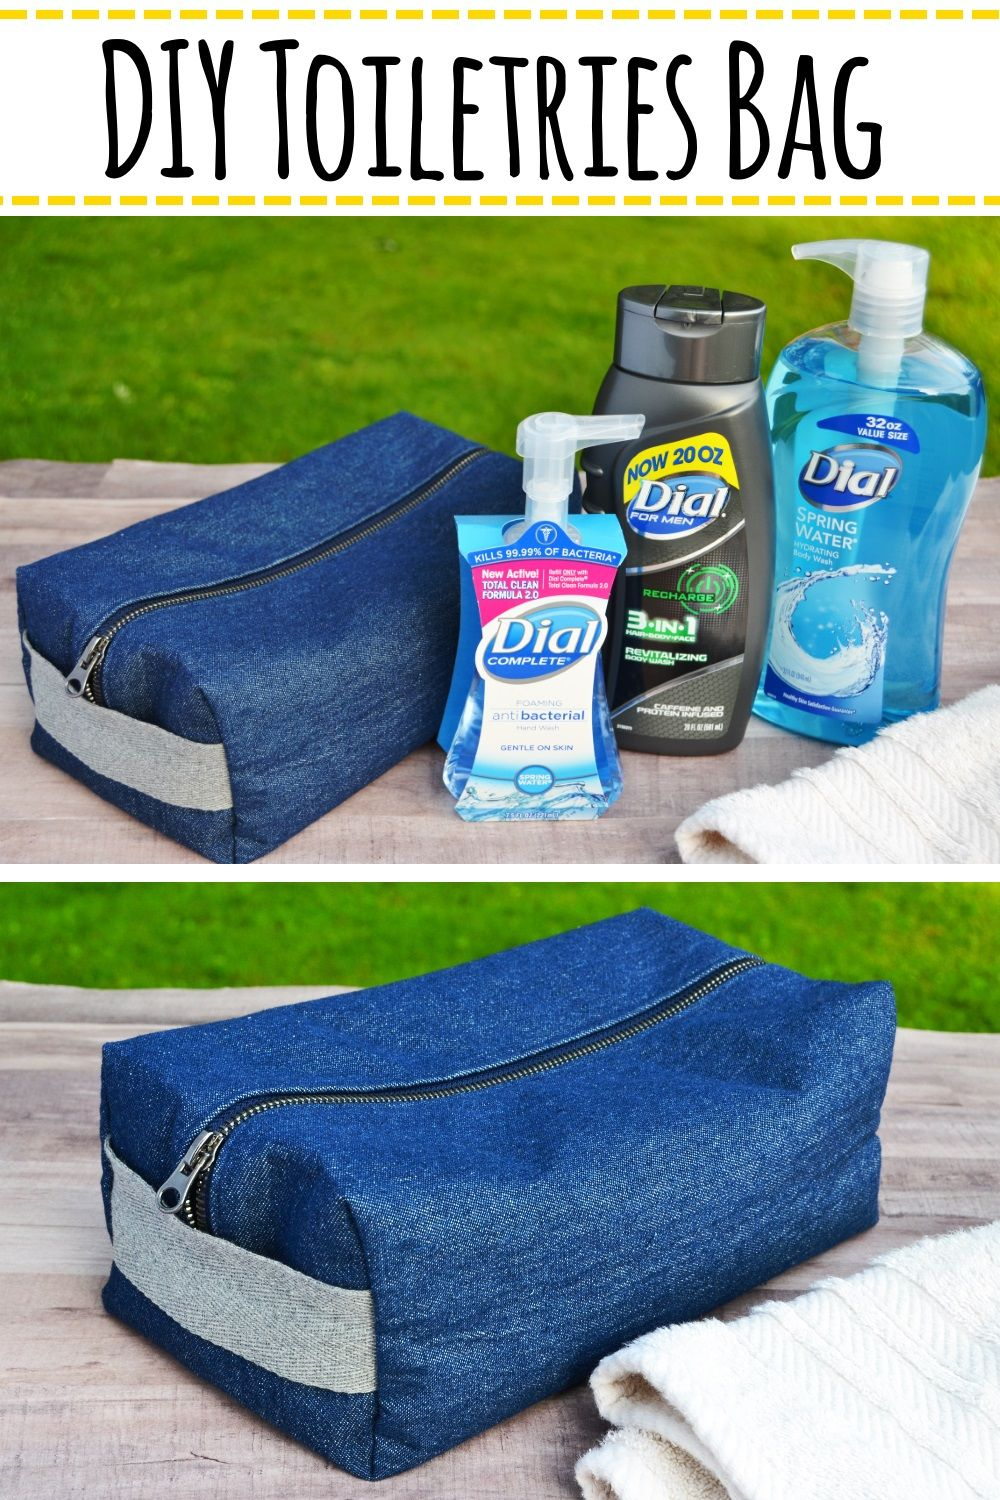 Diy Toiletries Bag Tutorial Make Your Own Boxy Toiletries Bag Using This Easy To Follow Tutorial Sewing Di Diy Toiletries Toiletry Bag Easy Sewing Projects